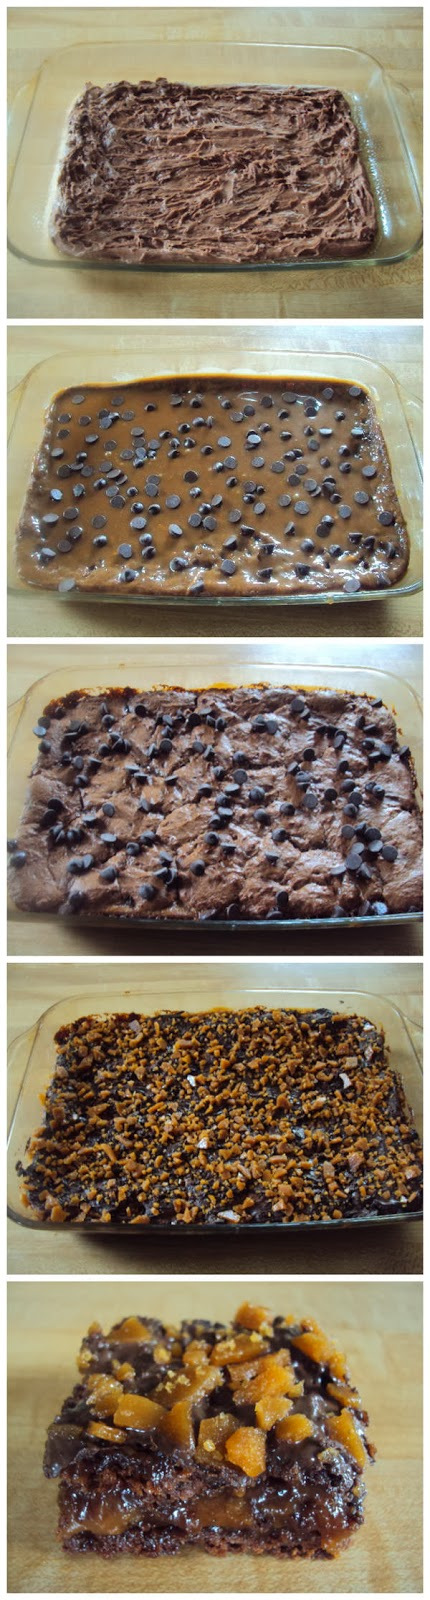 Caramel-Toffee-Brownies-Recipe